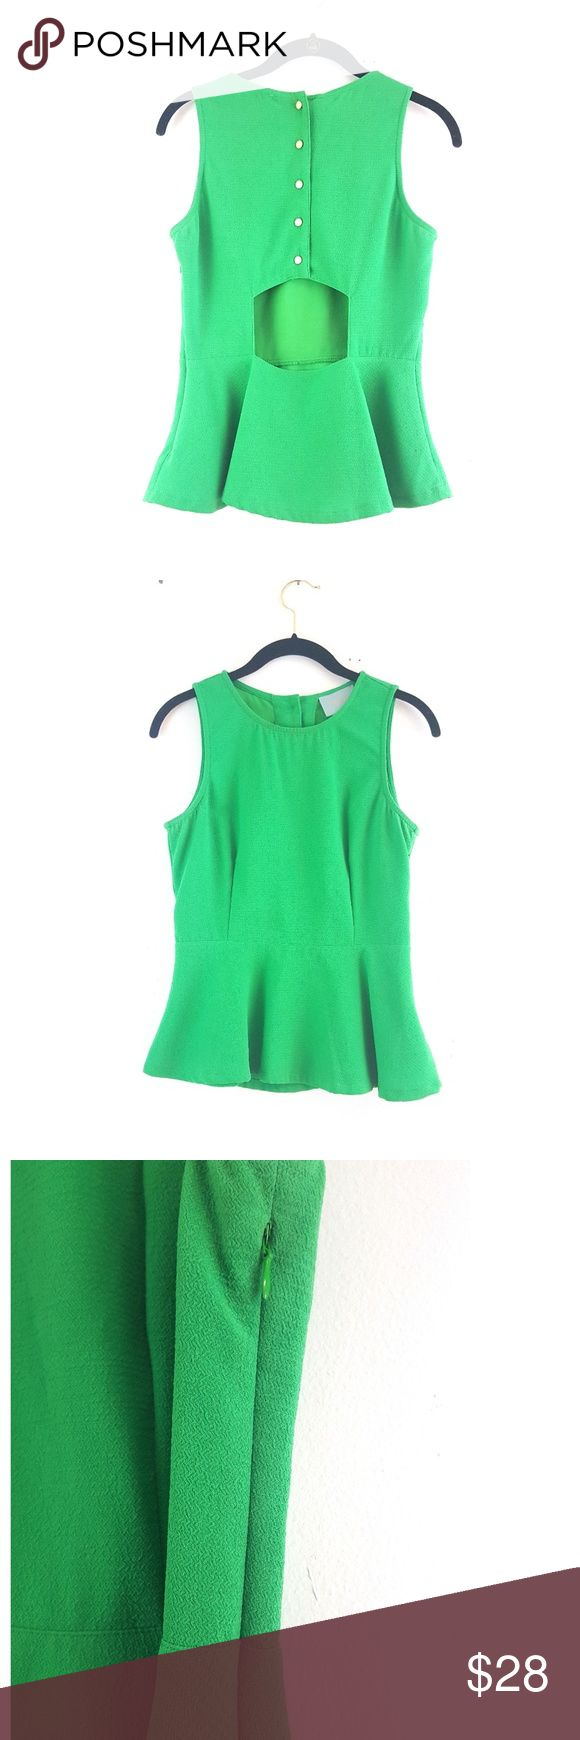 Bright Green Open Back Peplum Top Very beautiful and flattering peplum top! Sexy but subtle open back, side zipper, gold button detailing on back. Brand is Skies are Blue. In excellent condition!  ✔🔮 Feel free to ask questions! 💸🎉 Open to REASONABLE offers! 🌟🛍 Bundle for 20% off! Francesca's Collections Tops Blouses